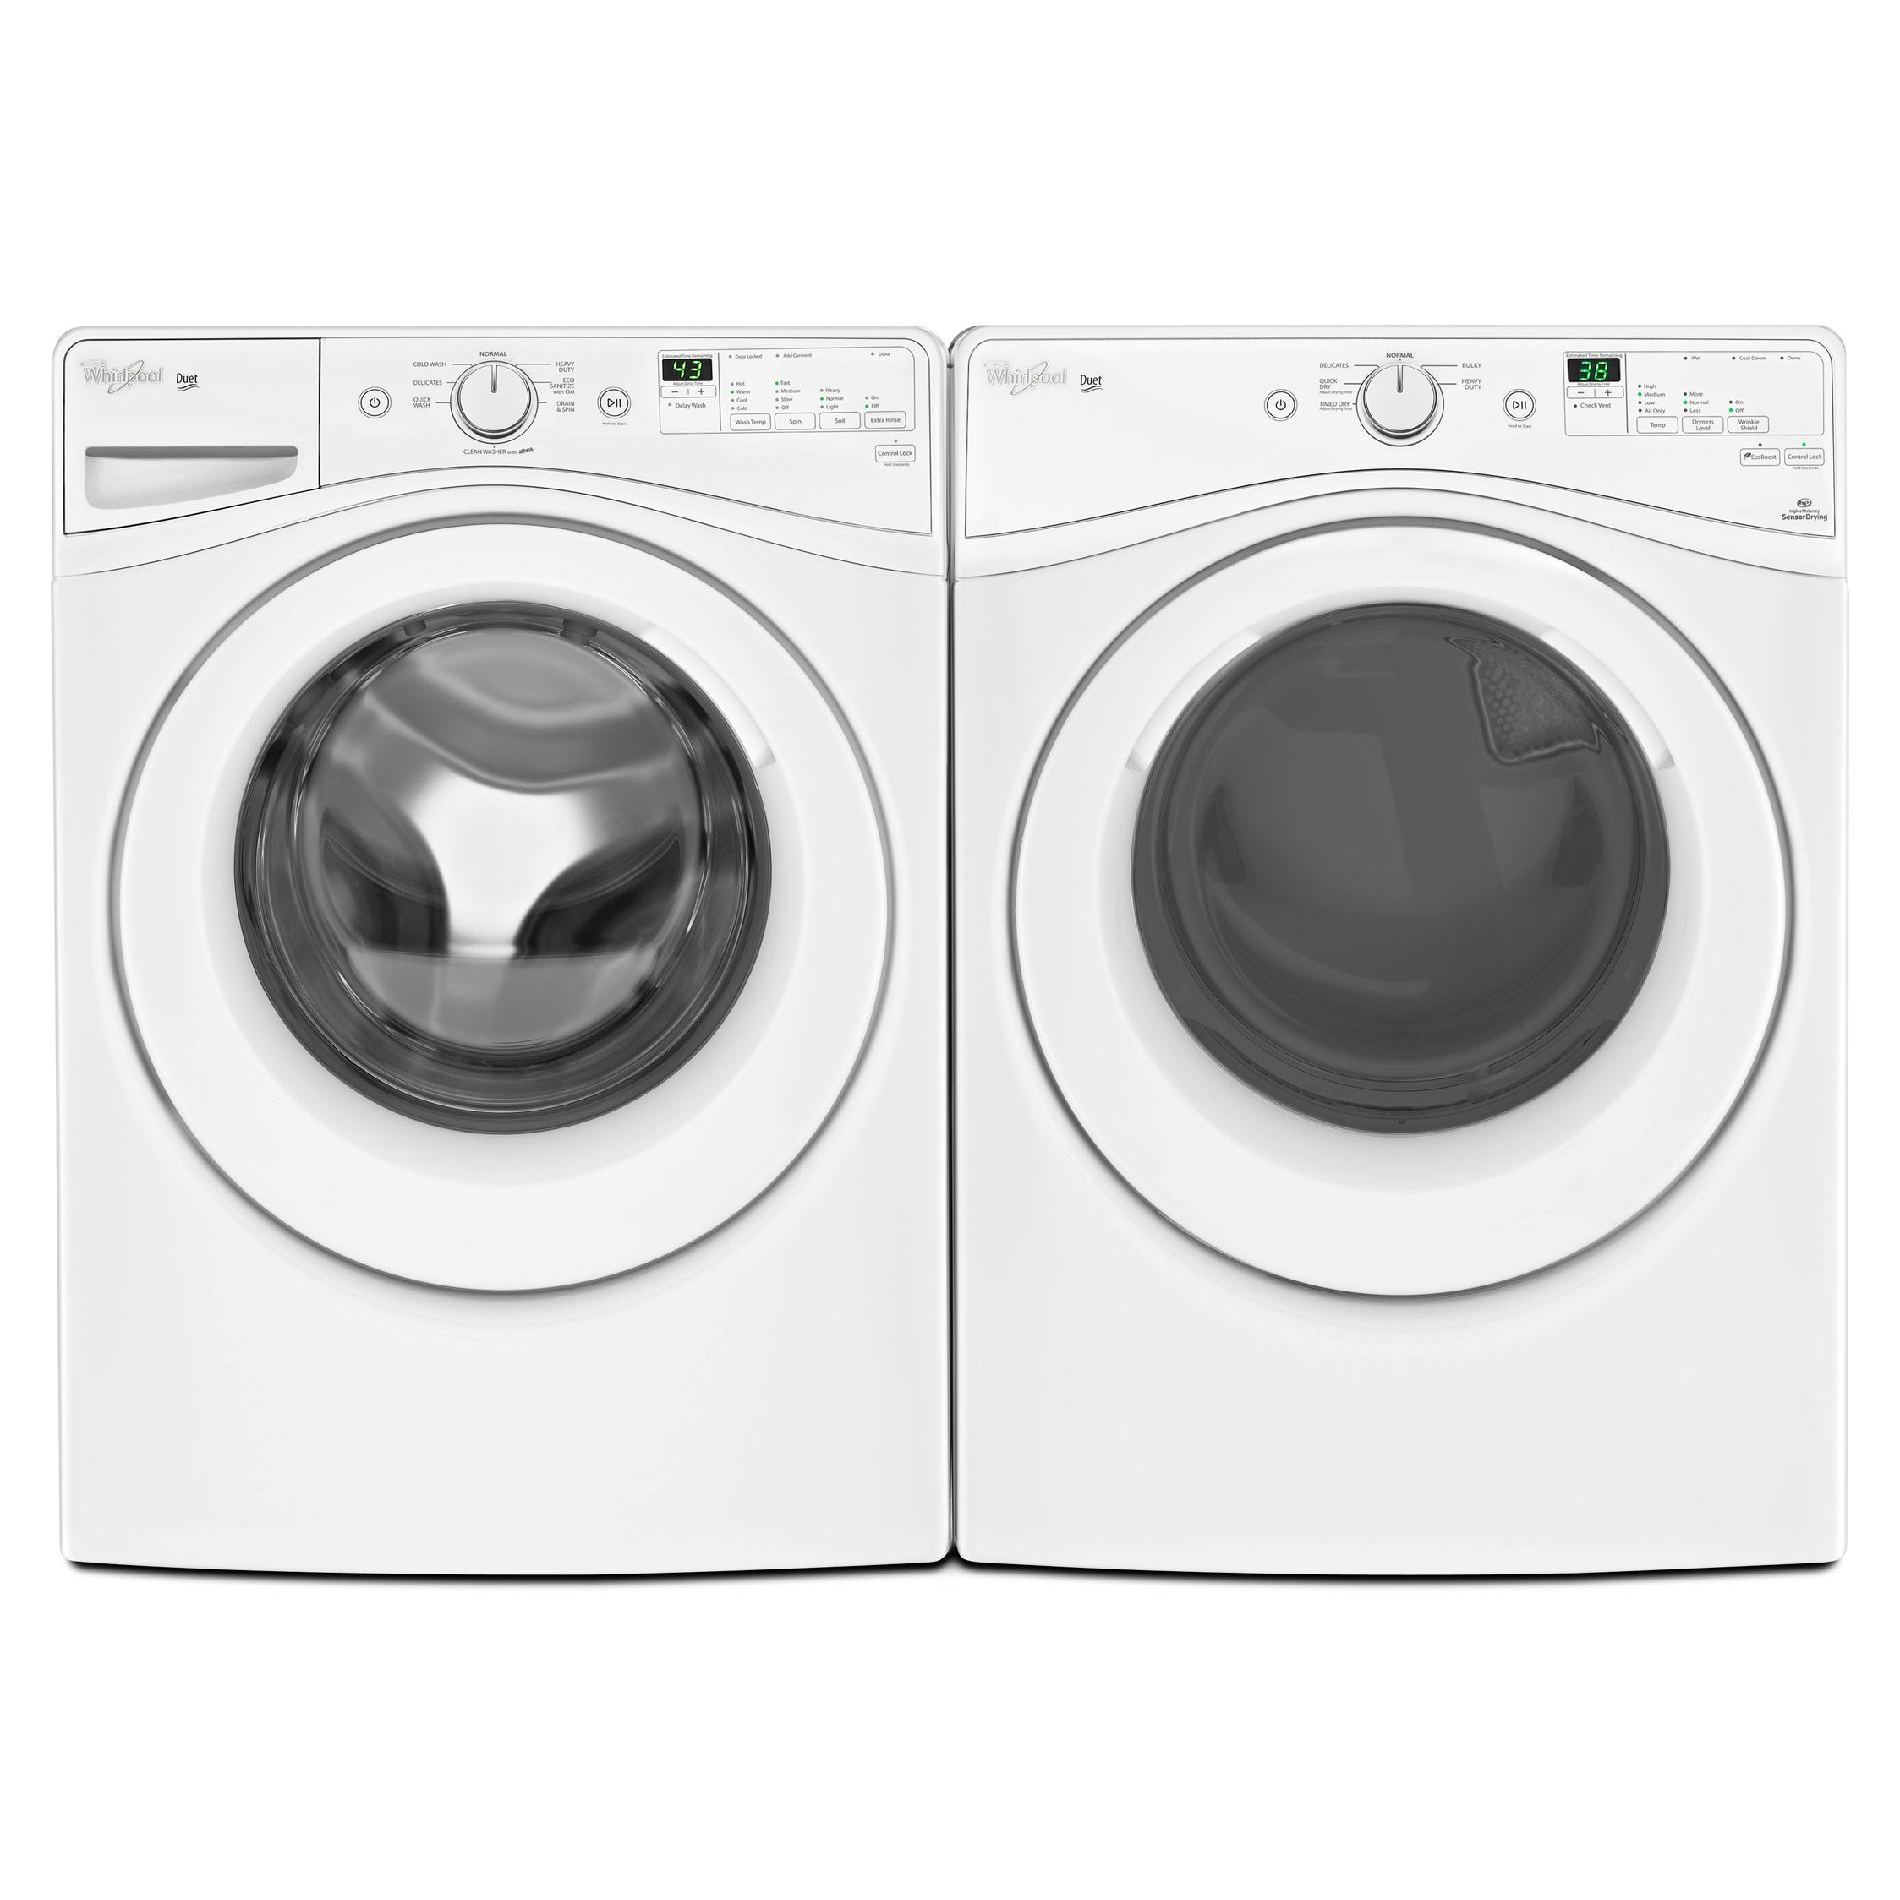 Whirlpool WFW72HEDW 4.2 cu. ft. Duet Front-Load Washer w/ Eco-Sanitize Cycle - White